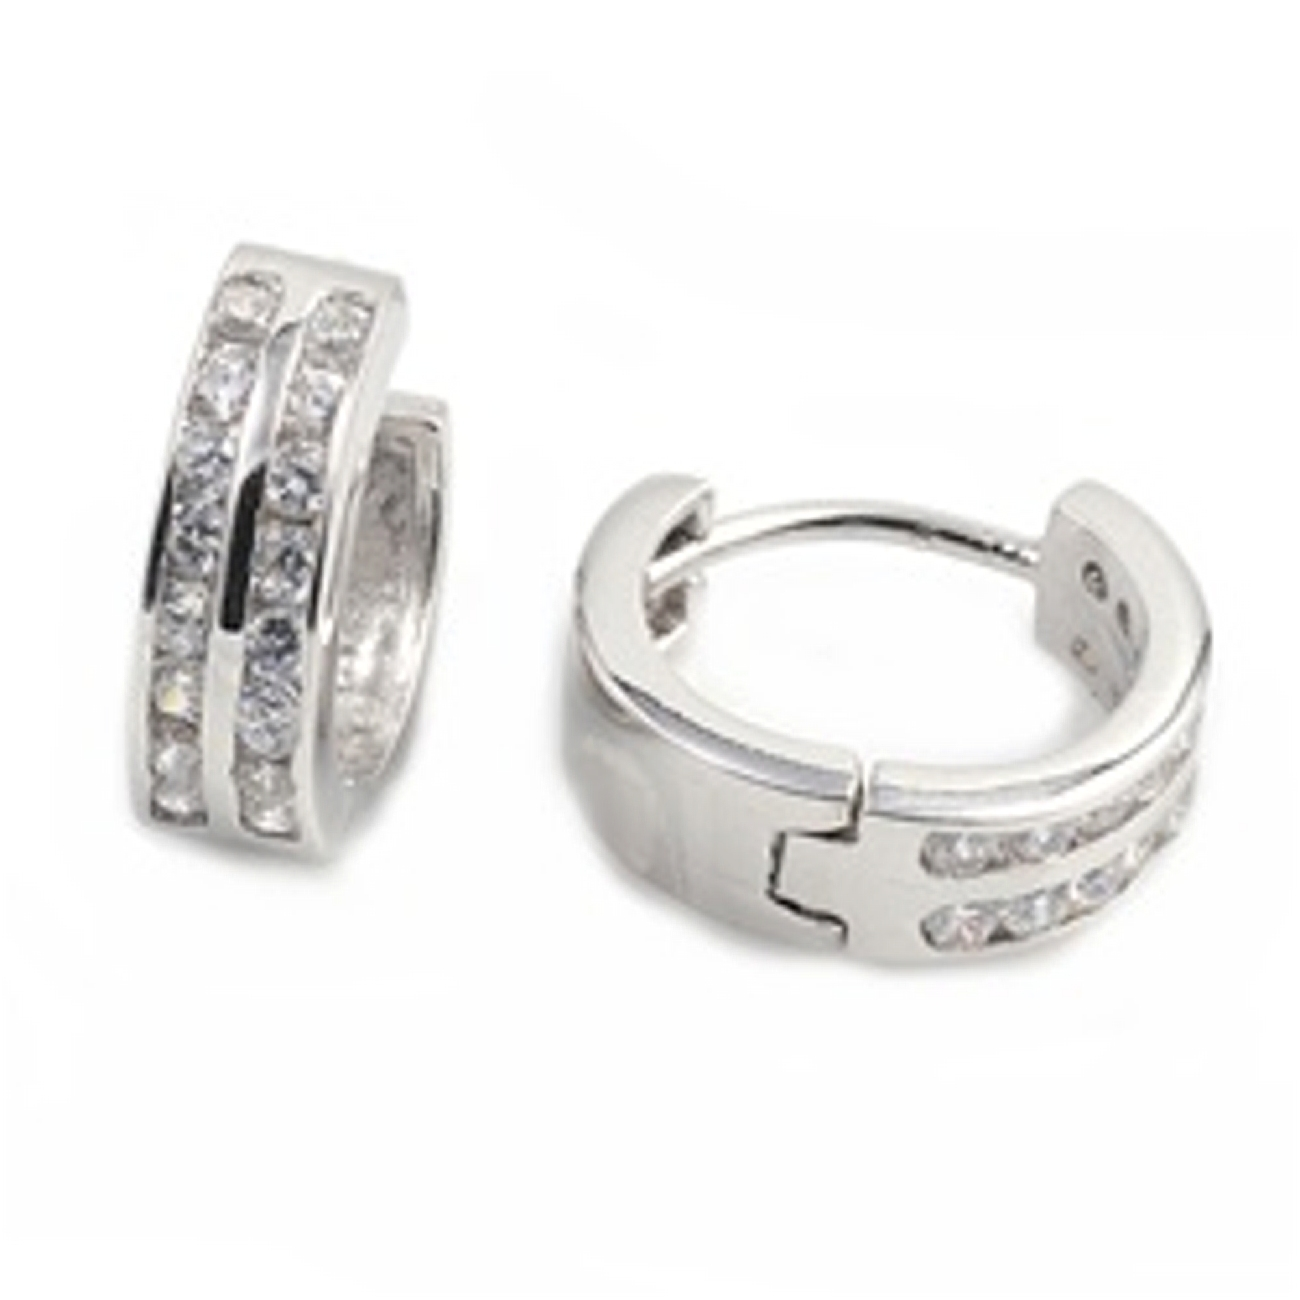 Single 15mm Two Channel Round Cubic Zirconia Huggie Hoop Earring